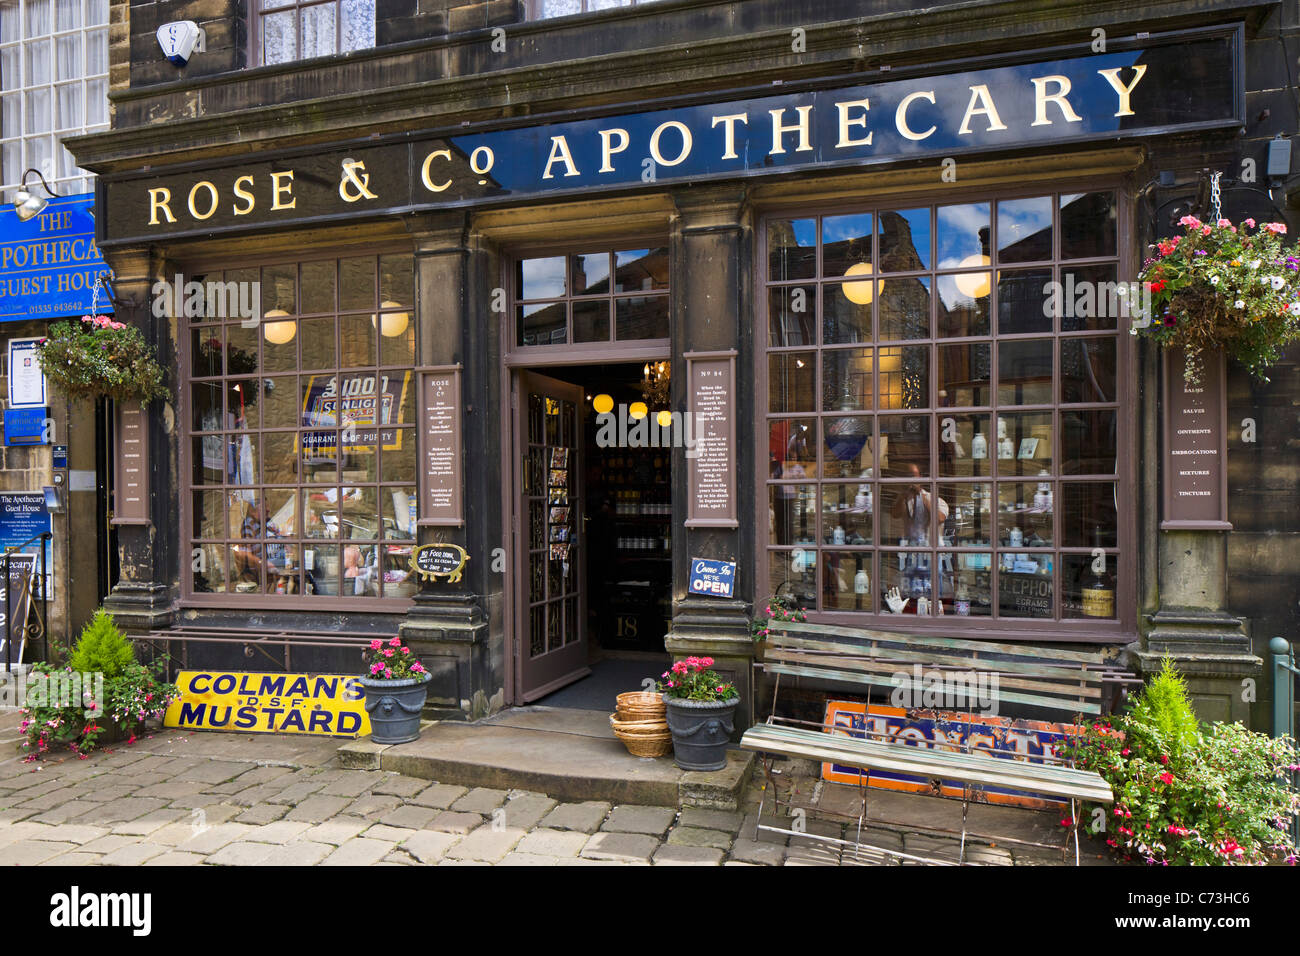 Rose & Co Apothecary on the main street (dating from the time of the Brontes), Haworth, West Yorkshire, England, Stock Photo